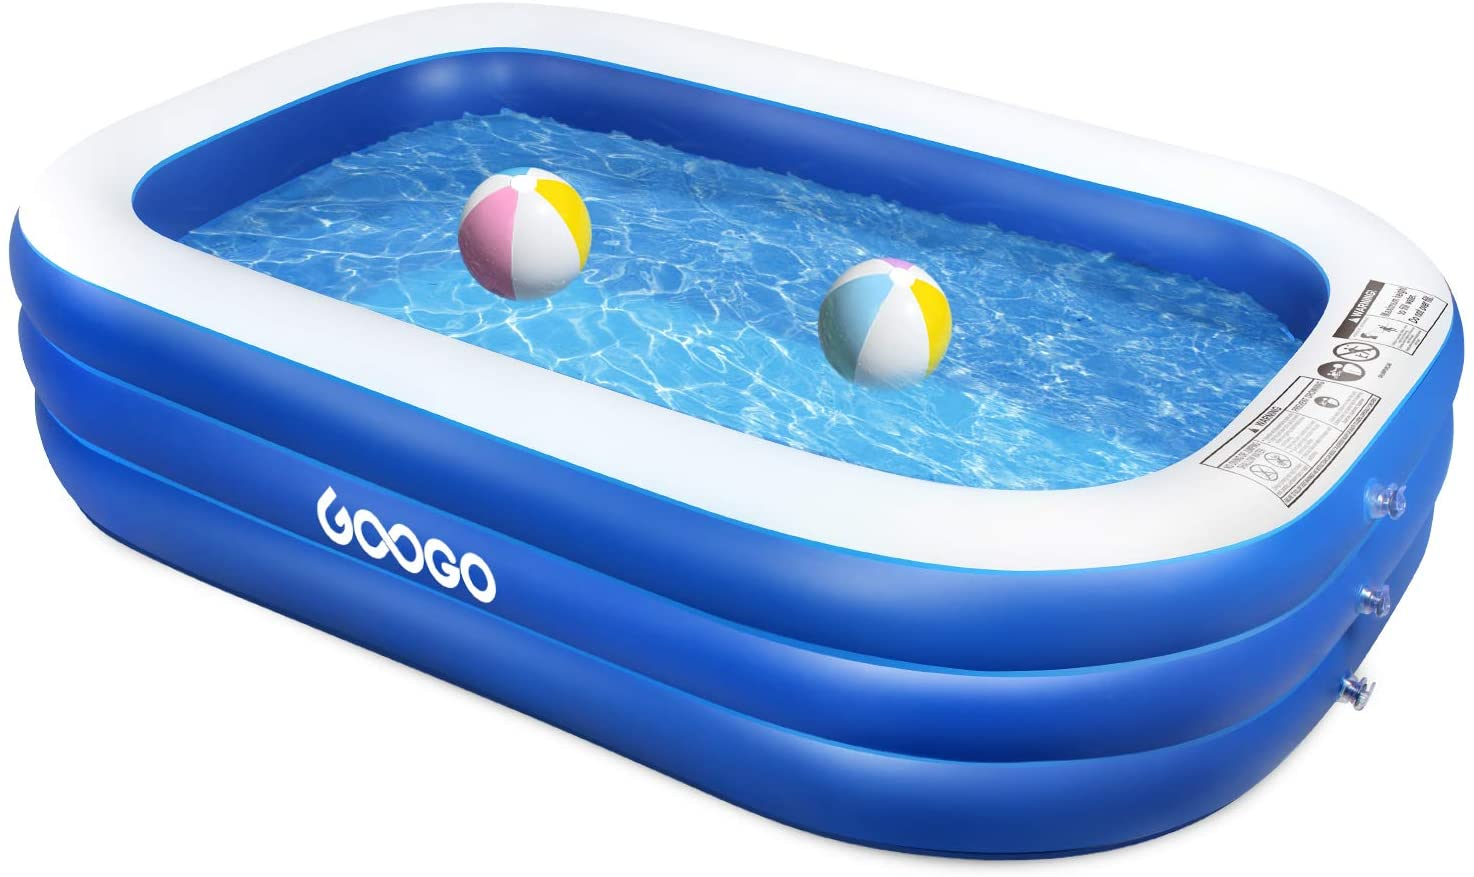 GOOGO Family Inflatable Swimming Pool - Small  Product Image